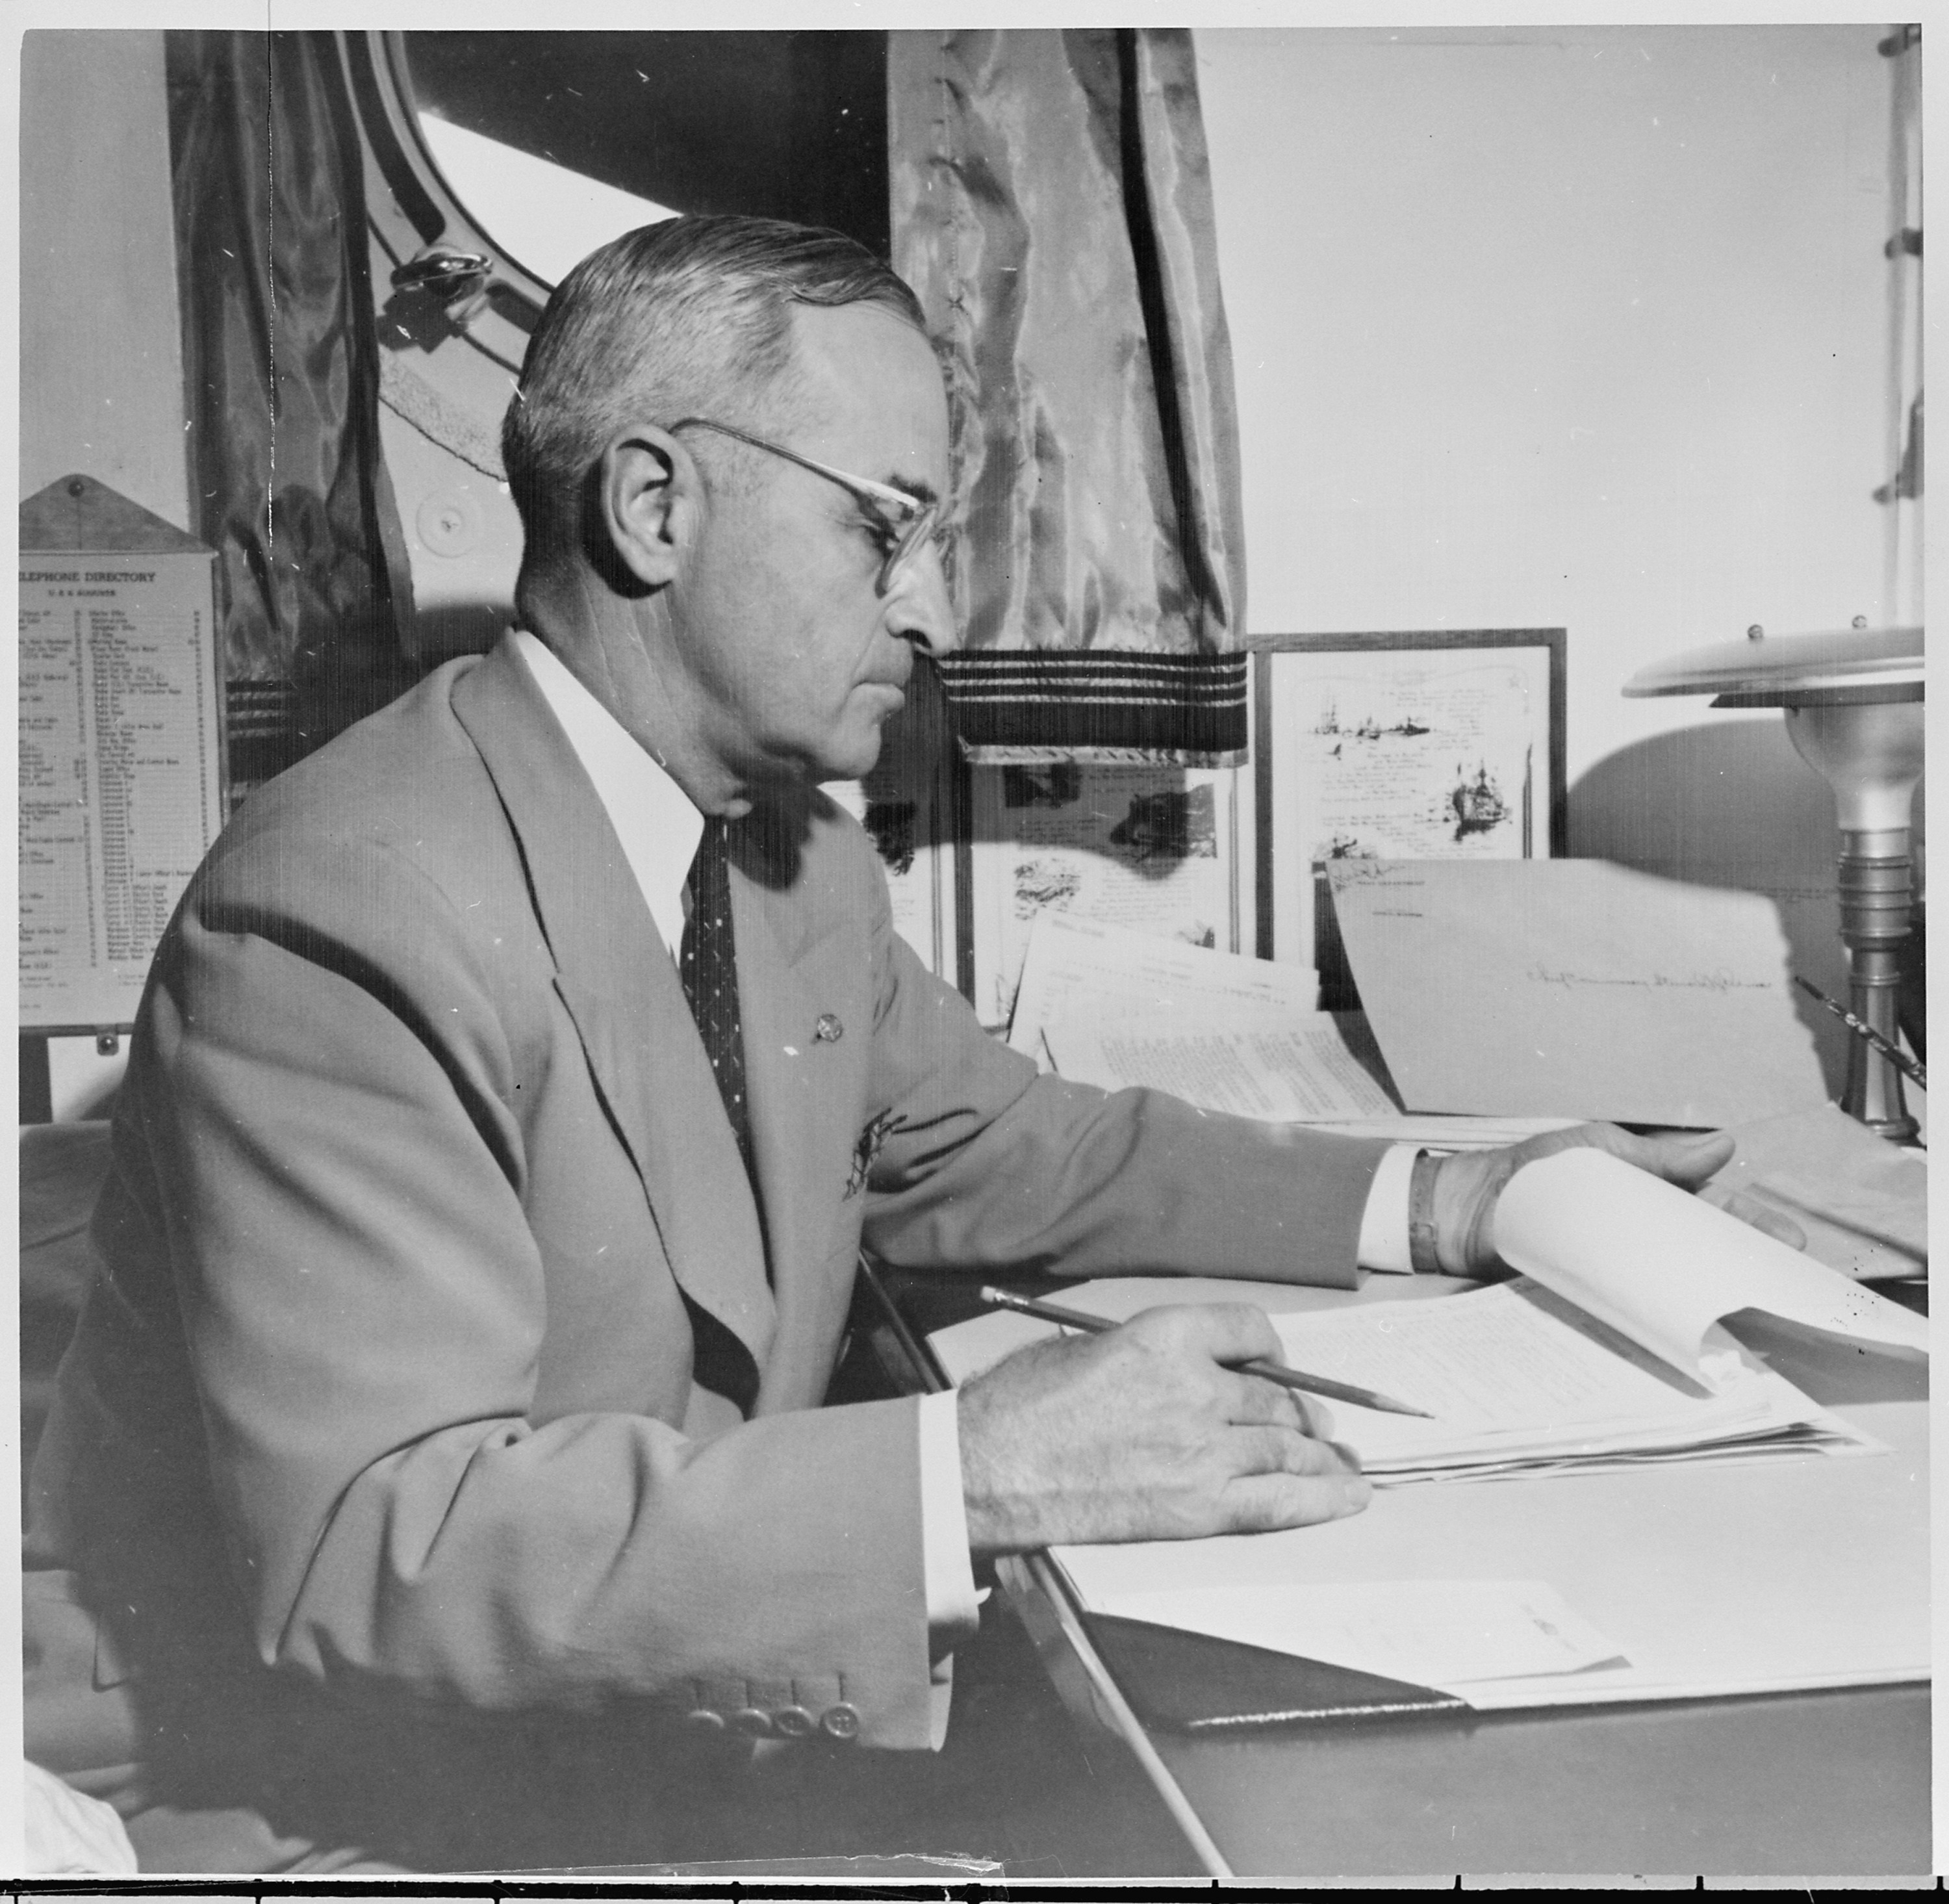 President_Truman_at_his_desk_aboard_the_U._S._S._Augusta_returning_to_the_United_States_from_the_Potsdam_Conference..._-_NARA_-_198727